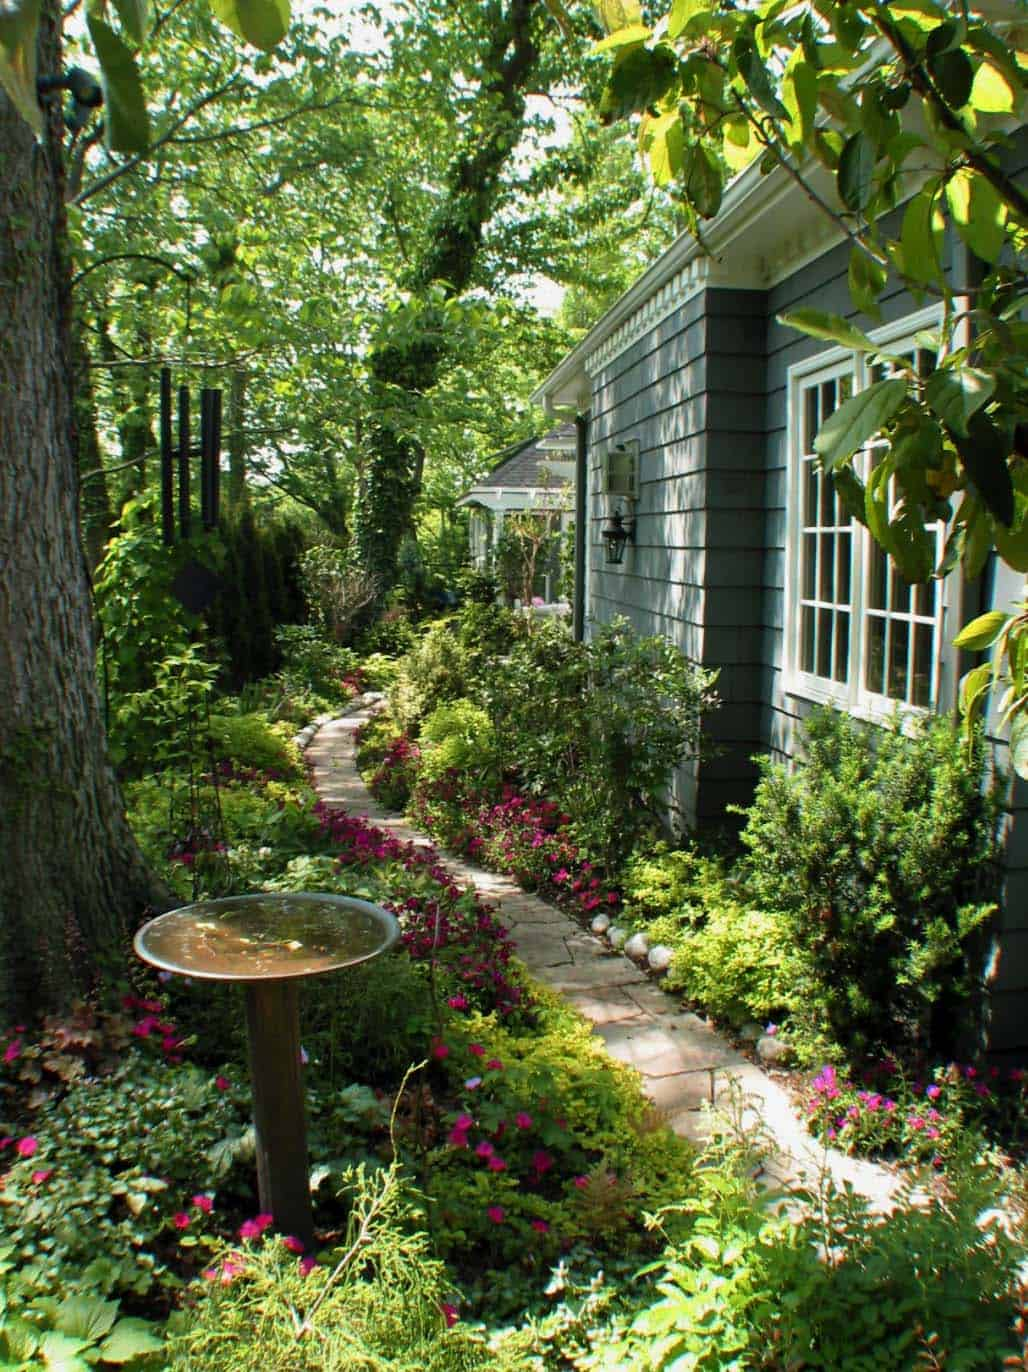 Garden Stone Pathway Ideas-11-1 Kindesign